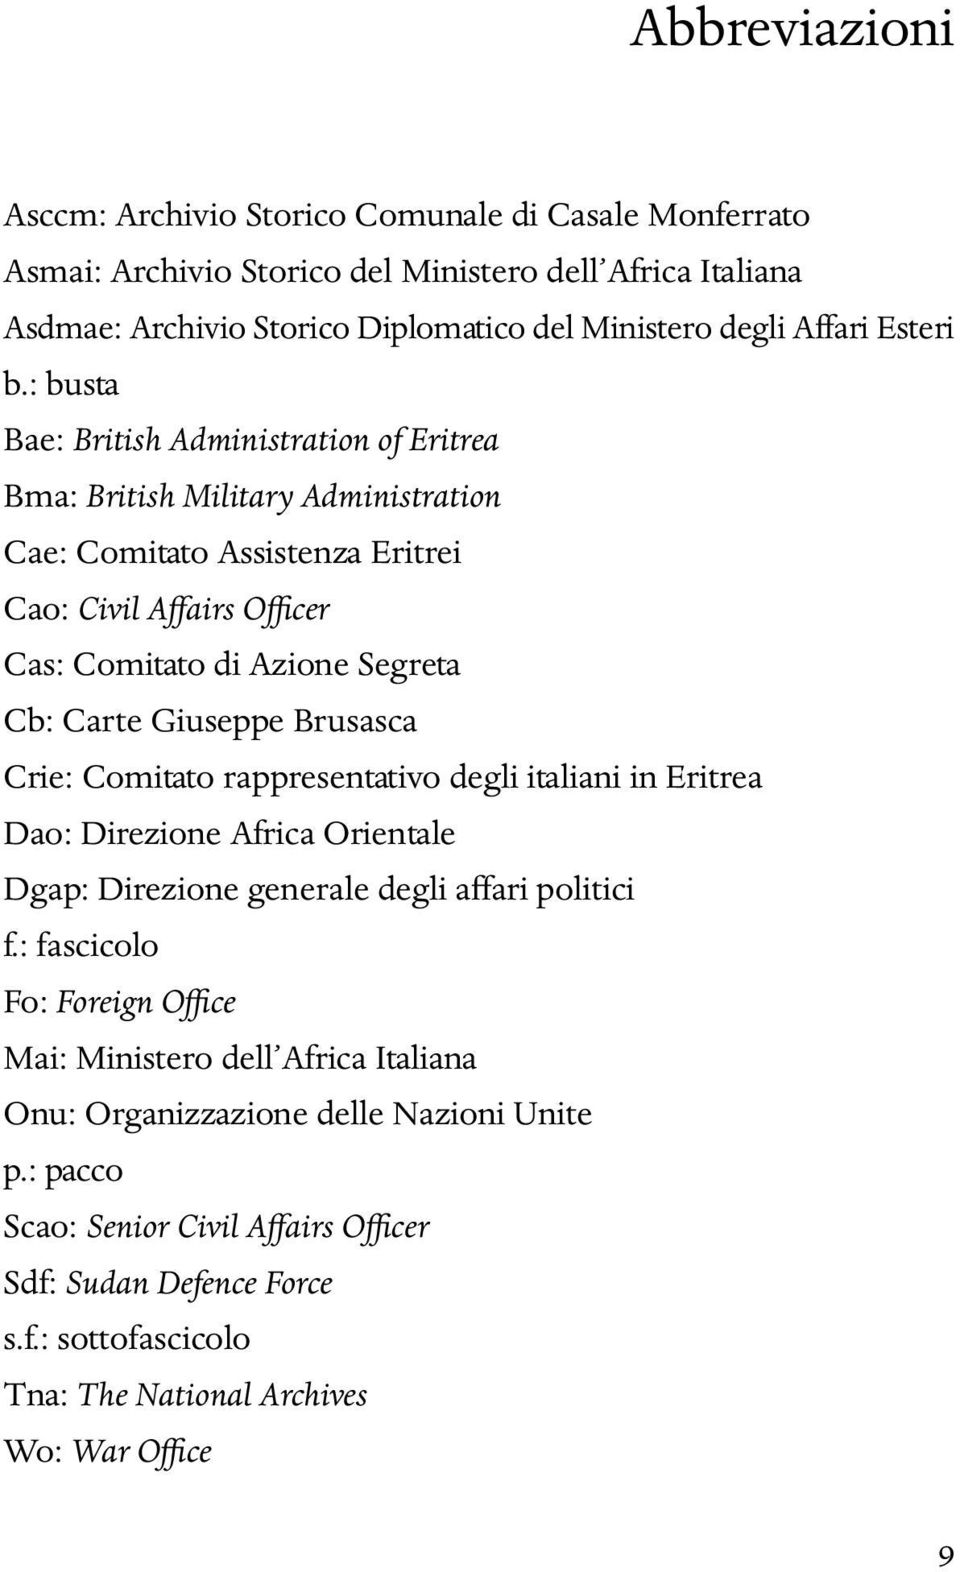 : busta Bae: British Administration of Eritrea Bma: British Military Administration Cae: Comitato Assistenza Eritrei Cao: Civil Affairs Officer Cas: Comitato di Azione Segreta Cb: Carte Giuseppe